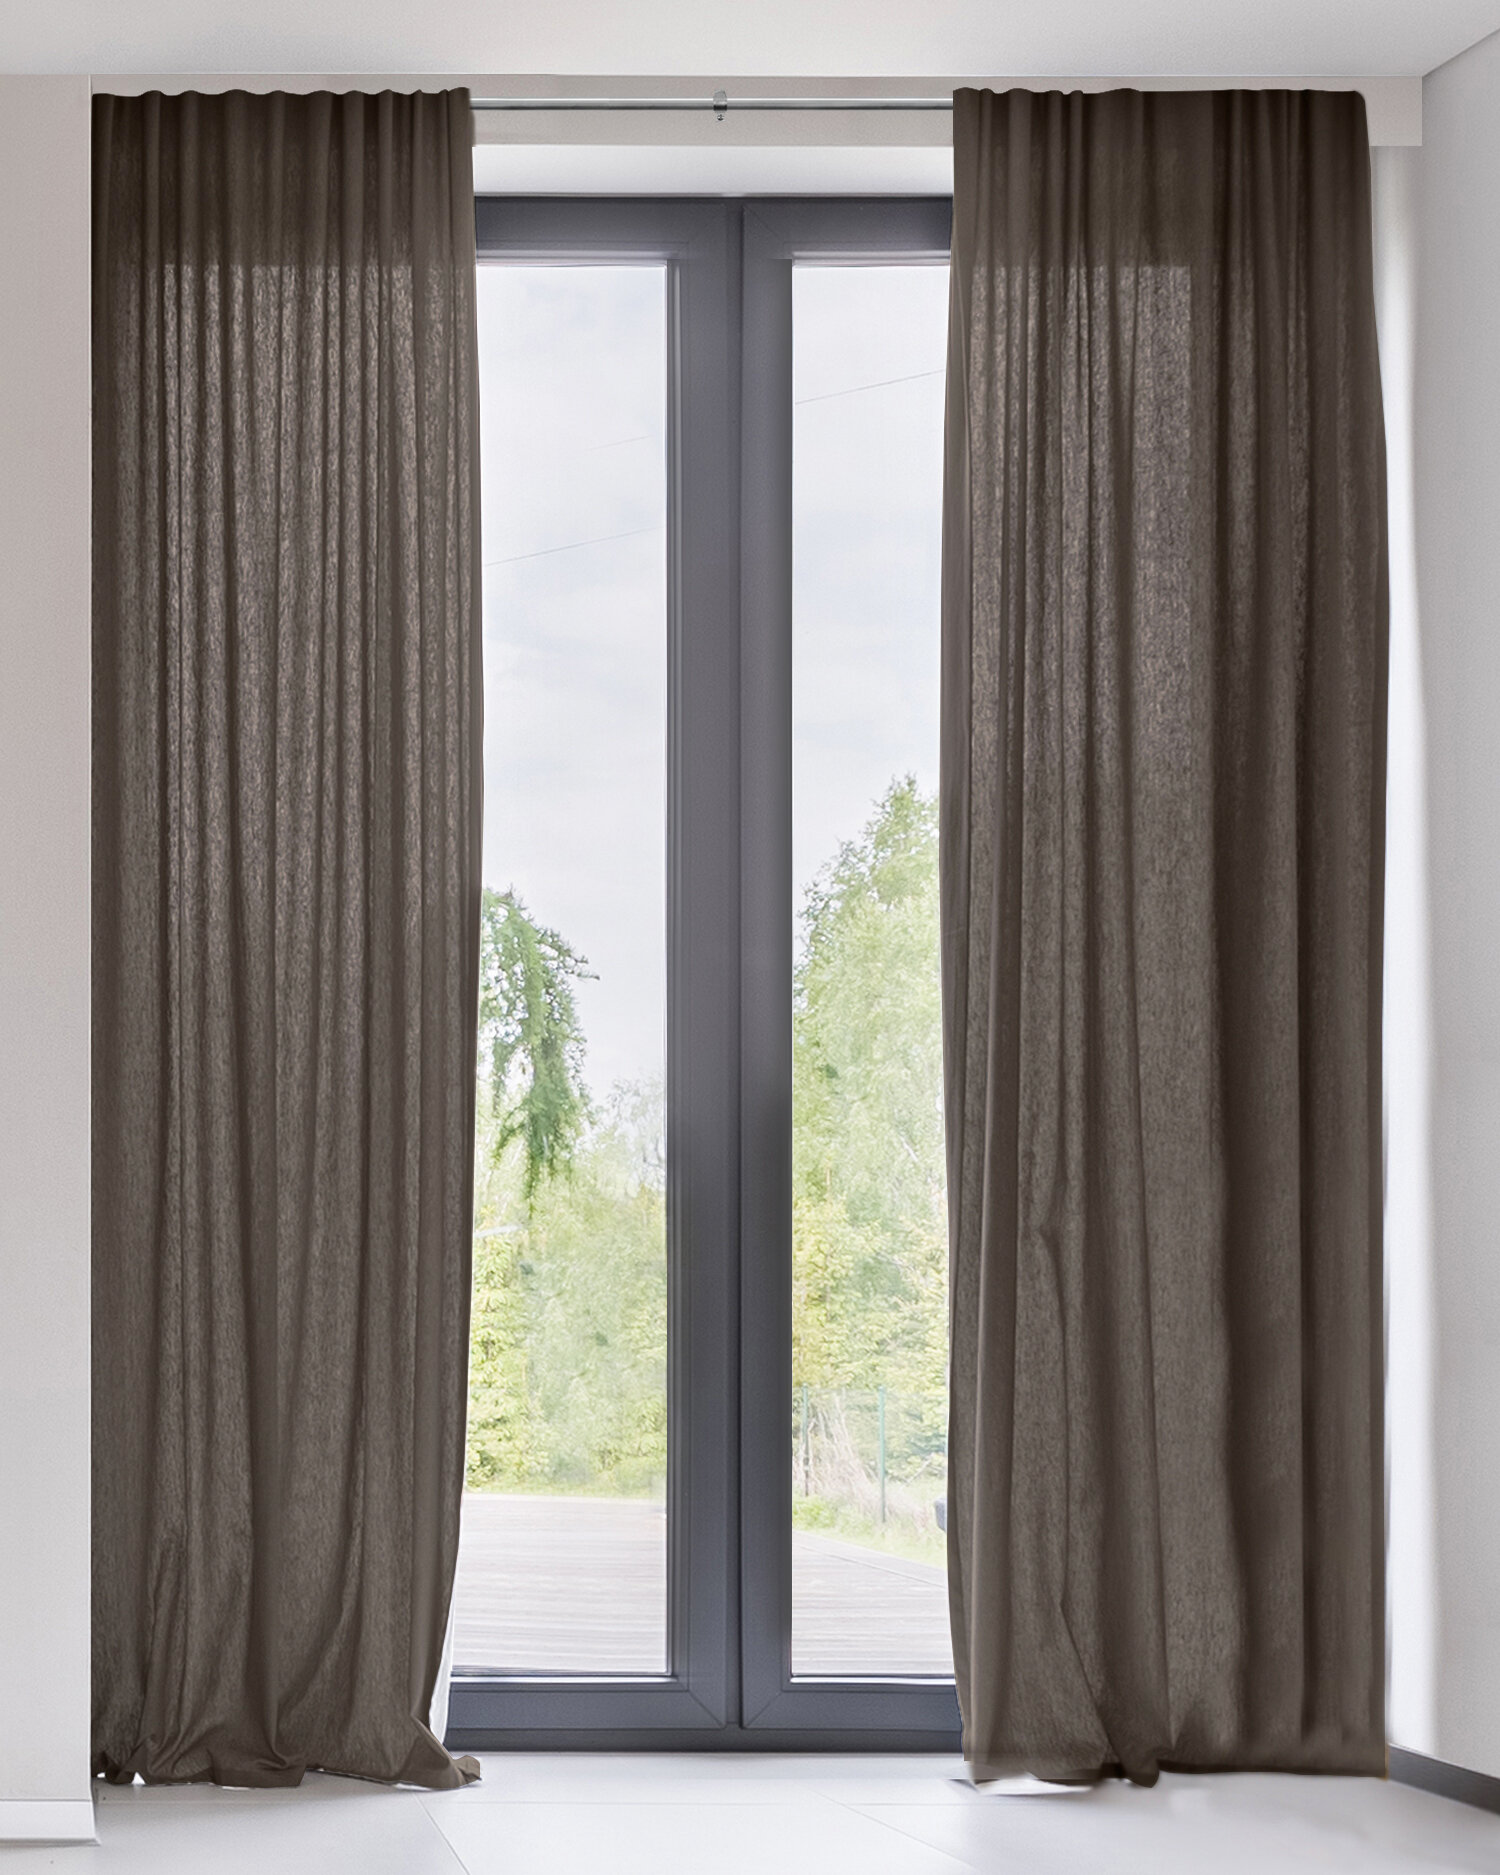 Sheer Synthetic Curtains Drapes You Ll Love In 2021 Wayfair